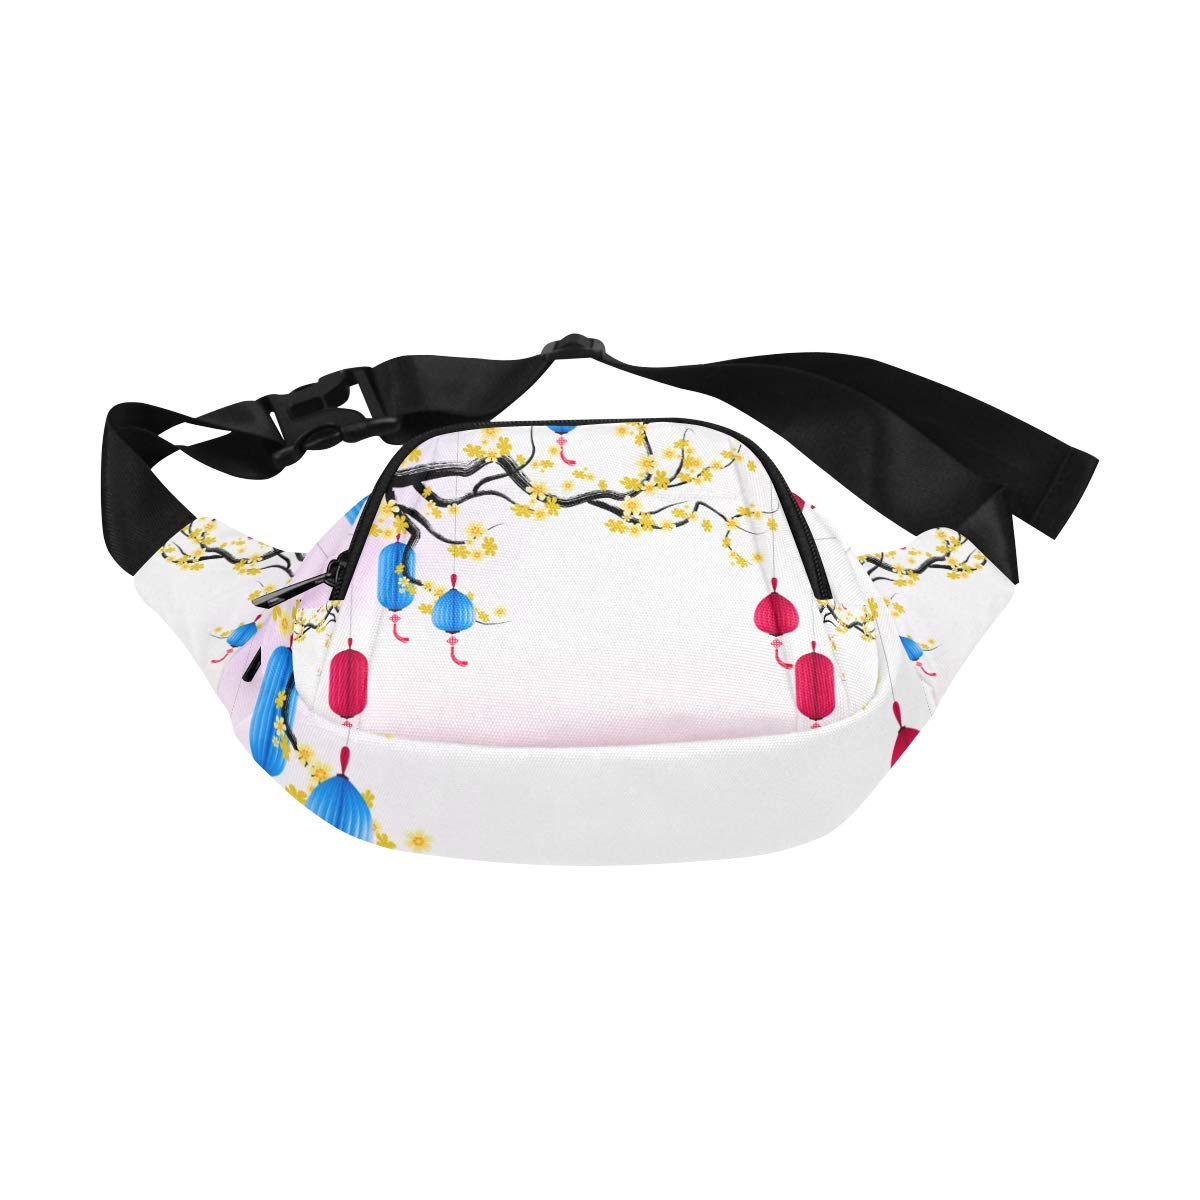 Chinese New Year And Mid-autumn Festival Lanterns Fenny Packs Waist Bags Adjustable Belt Waterproof Nylon Travel Running Sport Vacation Party For Men Women Boys Girls Kids